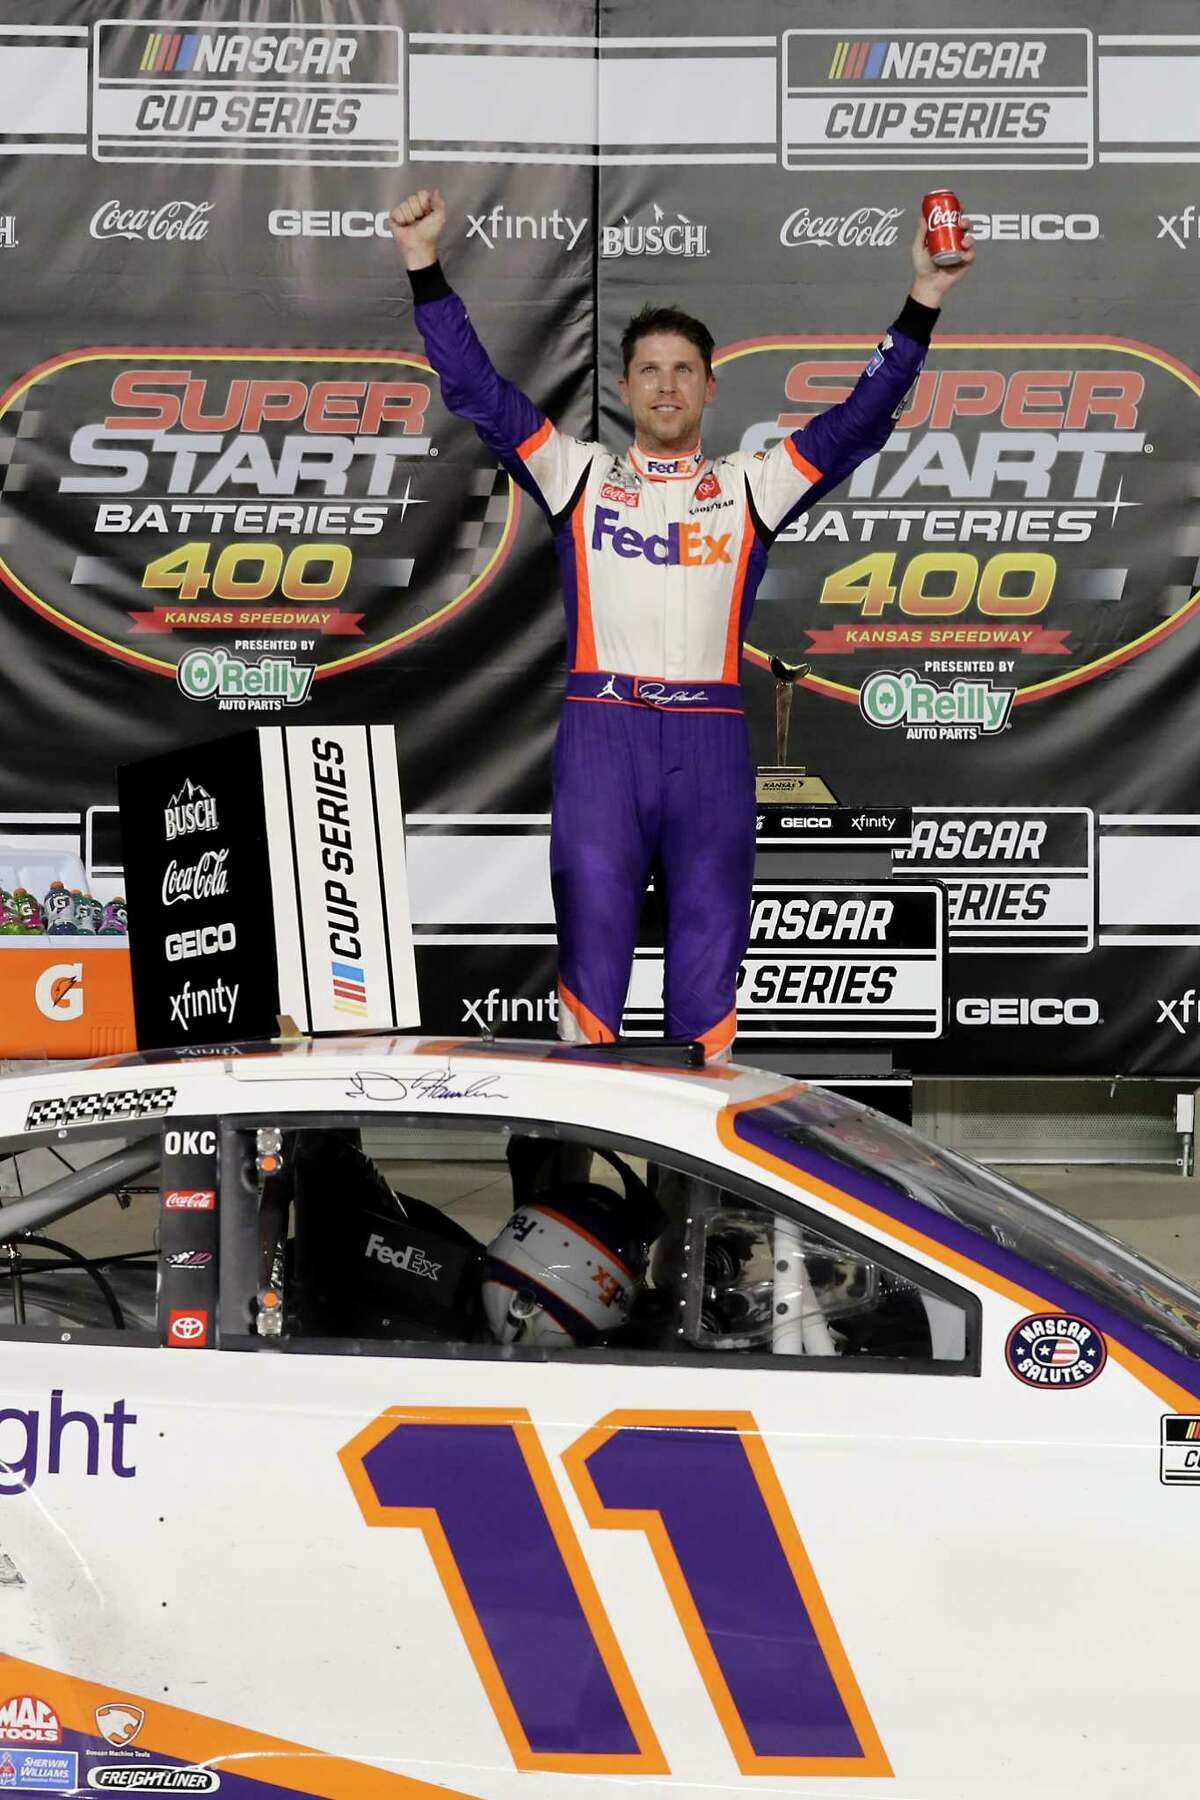 KANSAS CITY, KANSAS - JULY 23: Denny Hamlin, driver of the #11 FedEx Office Toyota, celebrates in Victory Lane after winning the NASCAR Cup Series Super Start Batteries 400 Presented by O'Reilly Auto Parts at Kansas Speedway on July 23, 2020 in Kansas City, Kansas. (Photo by Jamie Squire/Getty Images)